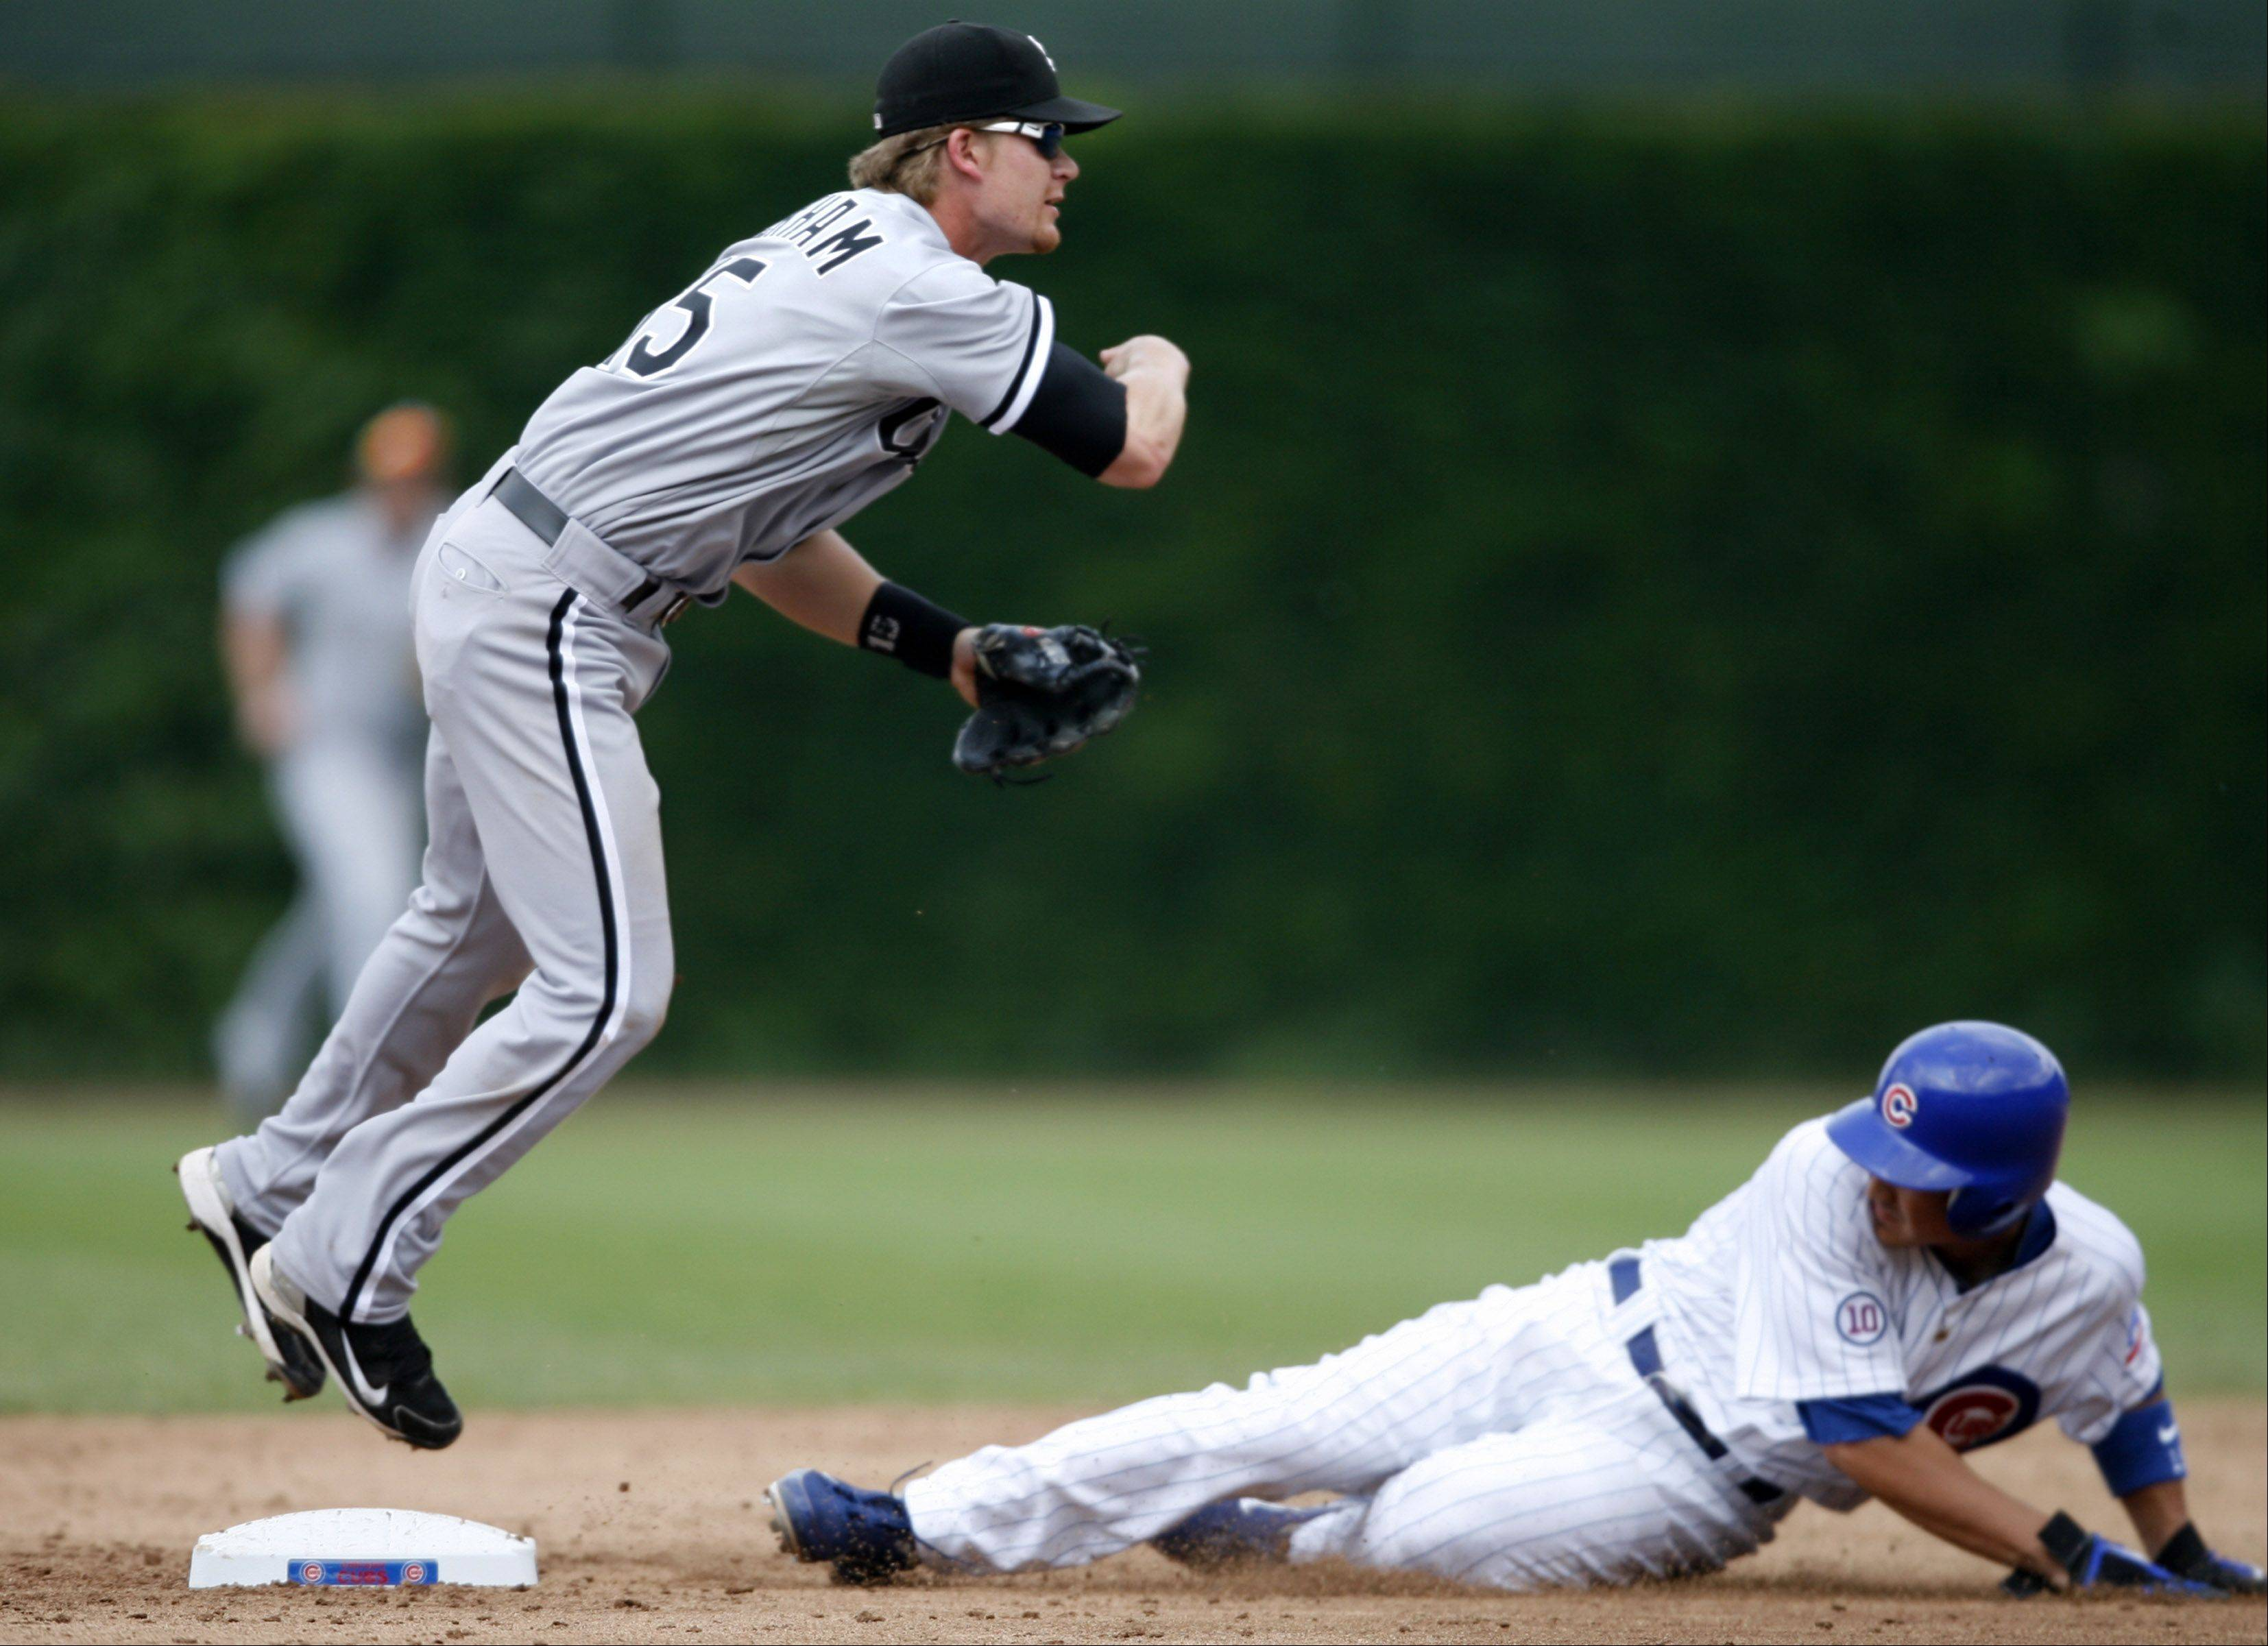 White Sox Gordon Beckham throws to first as Cubs Darwin Barney is out at second for a inning ending double play at Wrigley Field on Saturday.